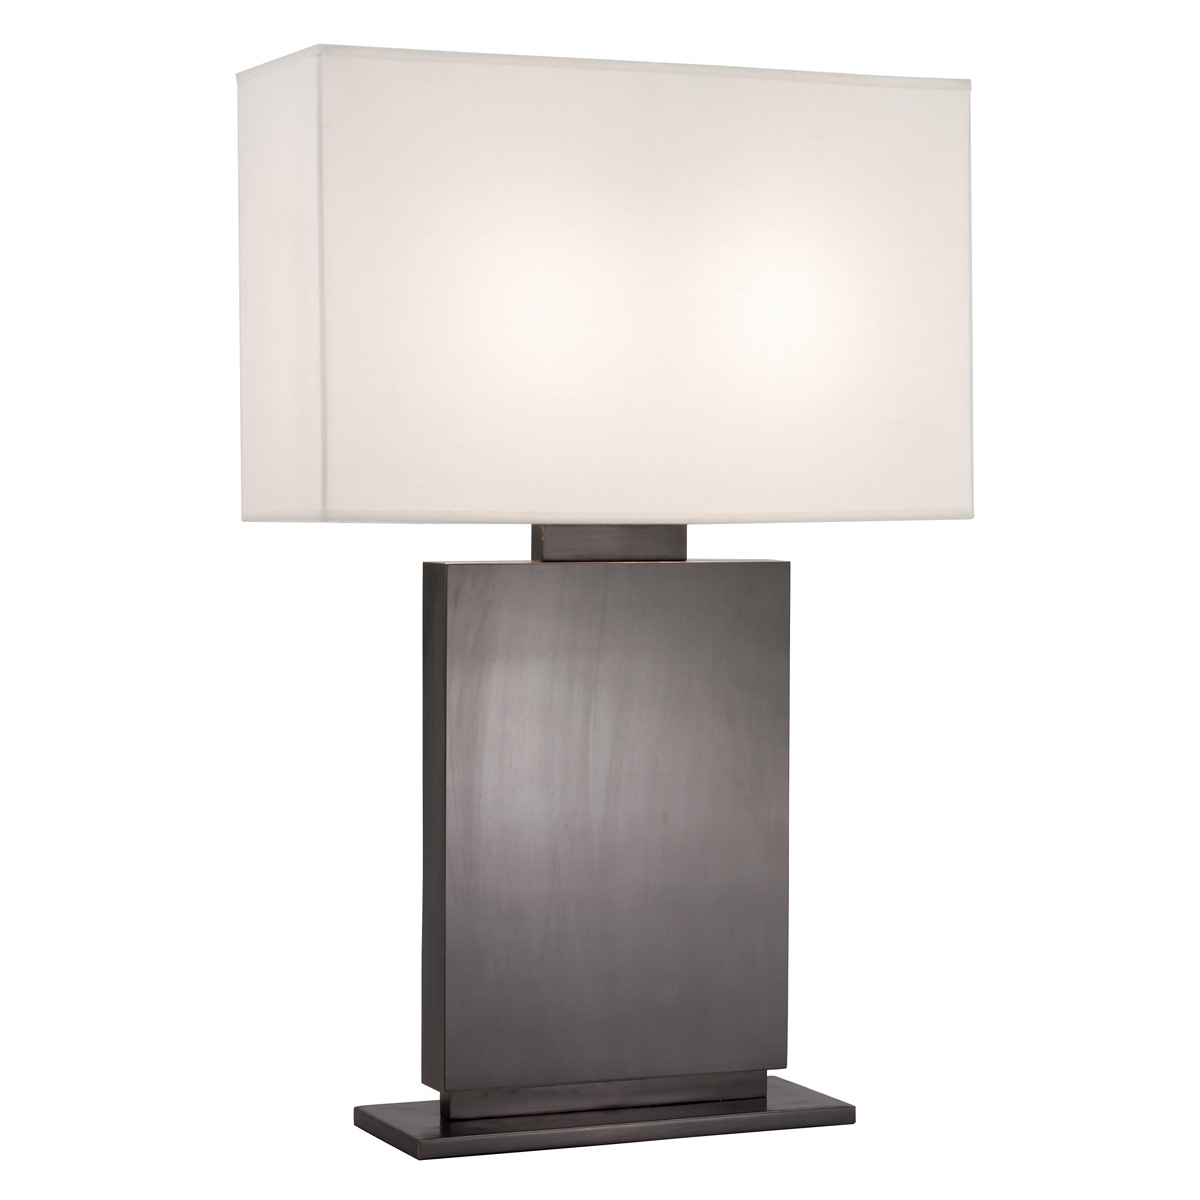 Sonneman lighting plinth tall table lamp shown for Table lamps under 50